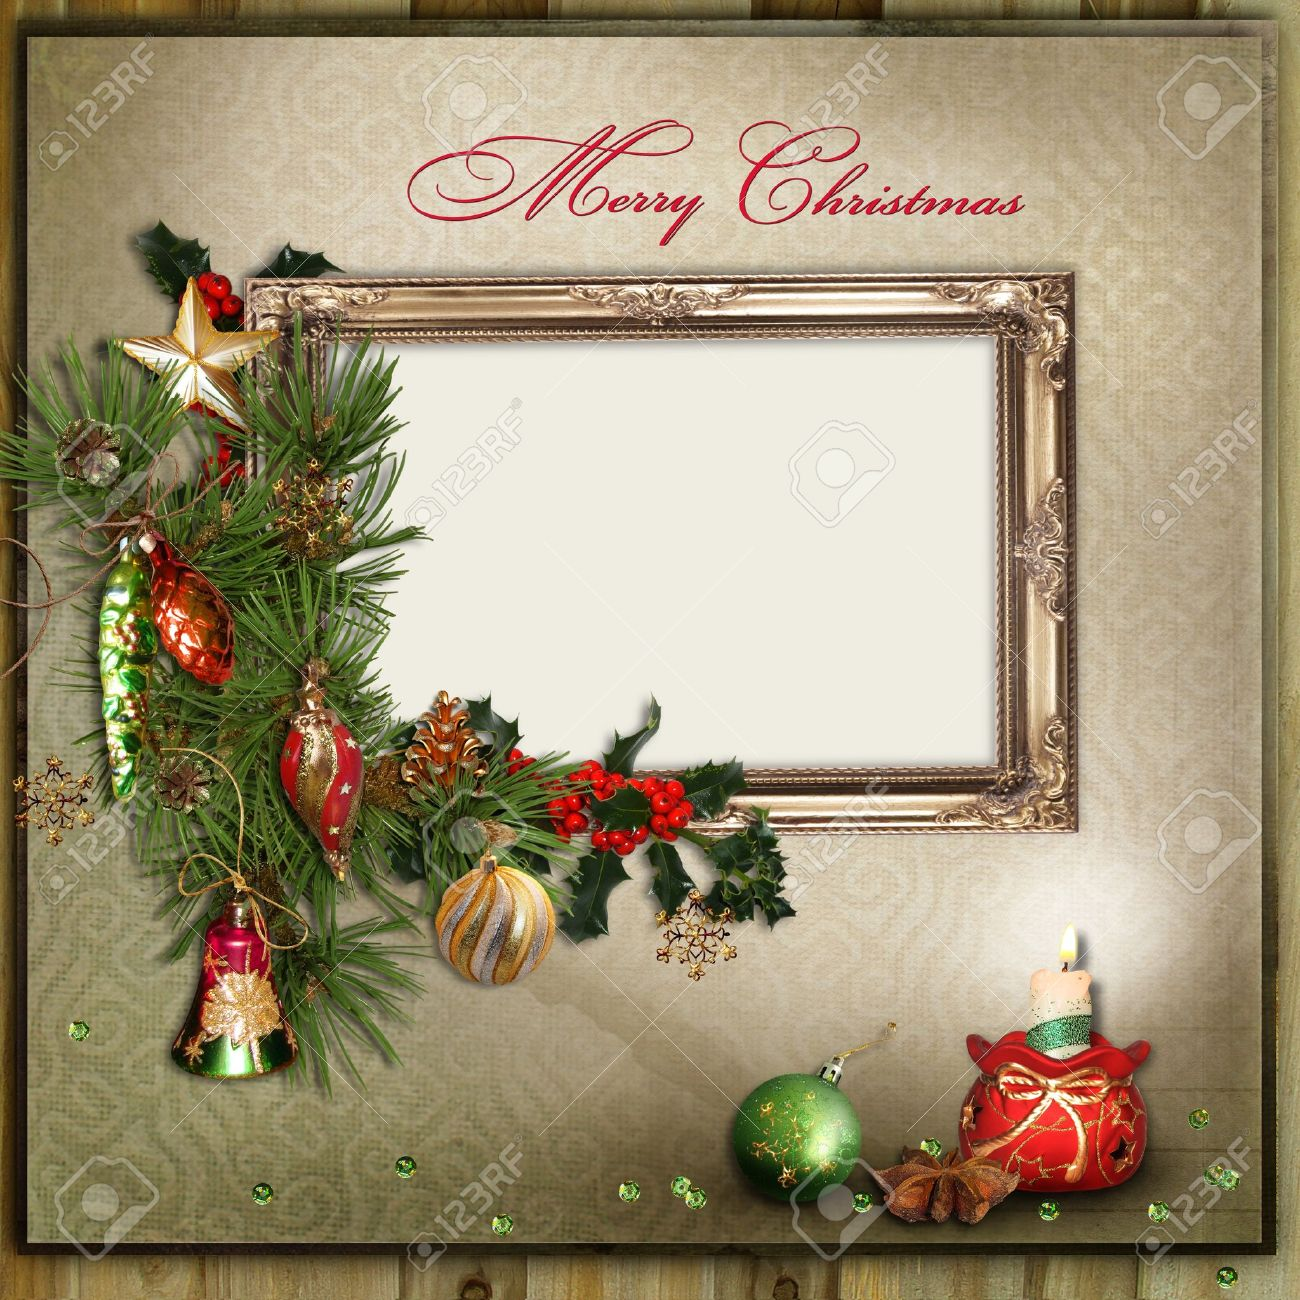 Christmas Card Frame.Christmas Greeting Card With Frame For A Family